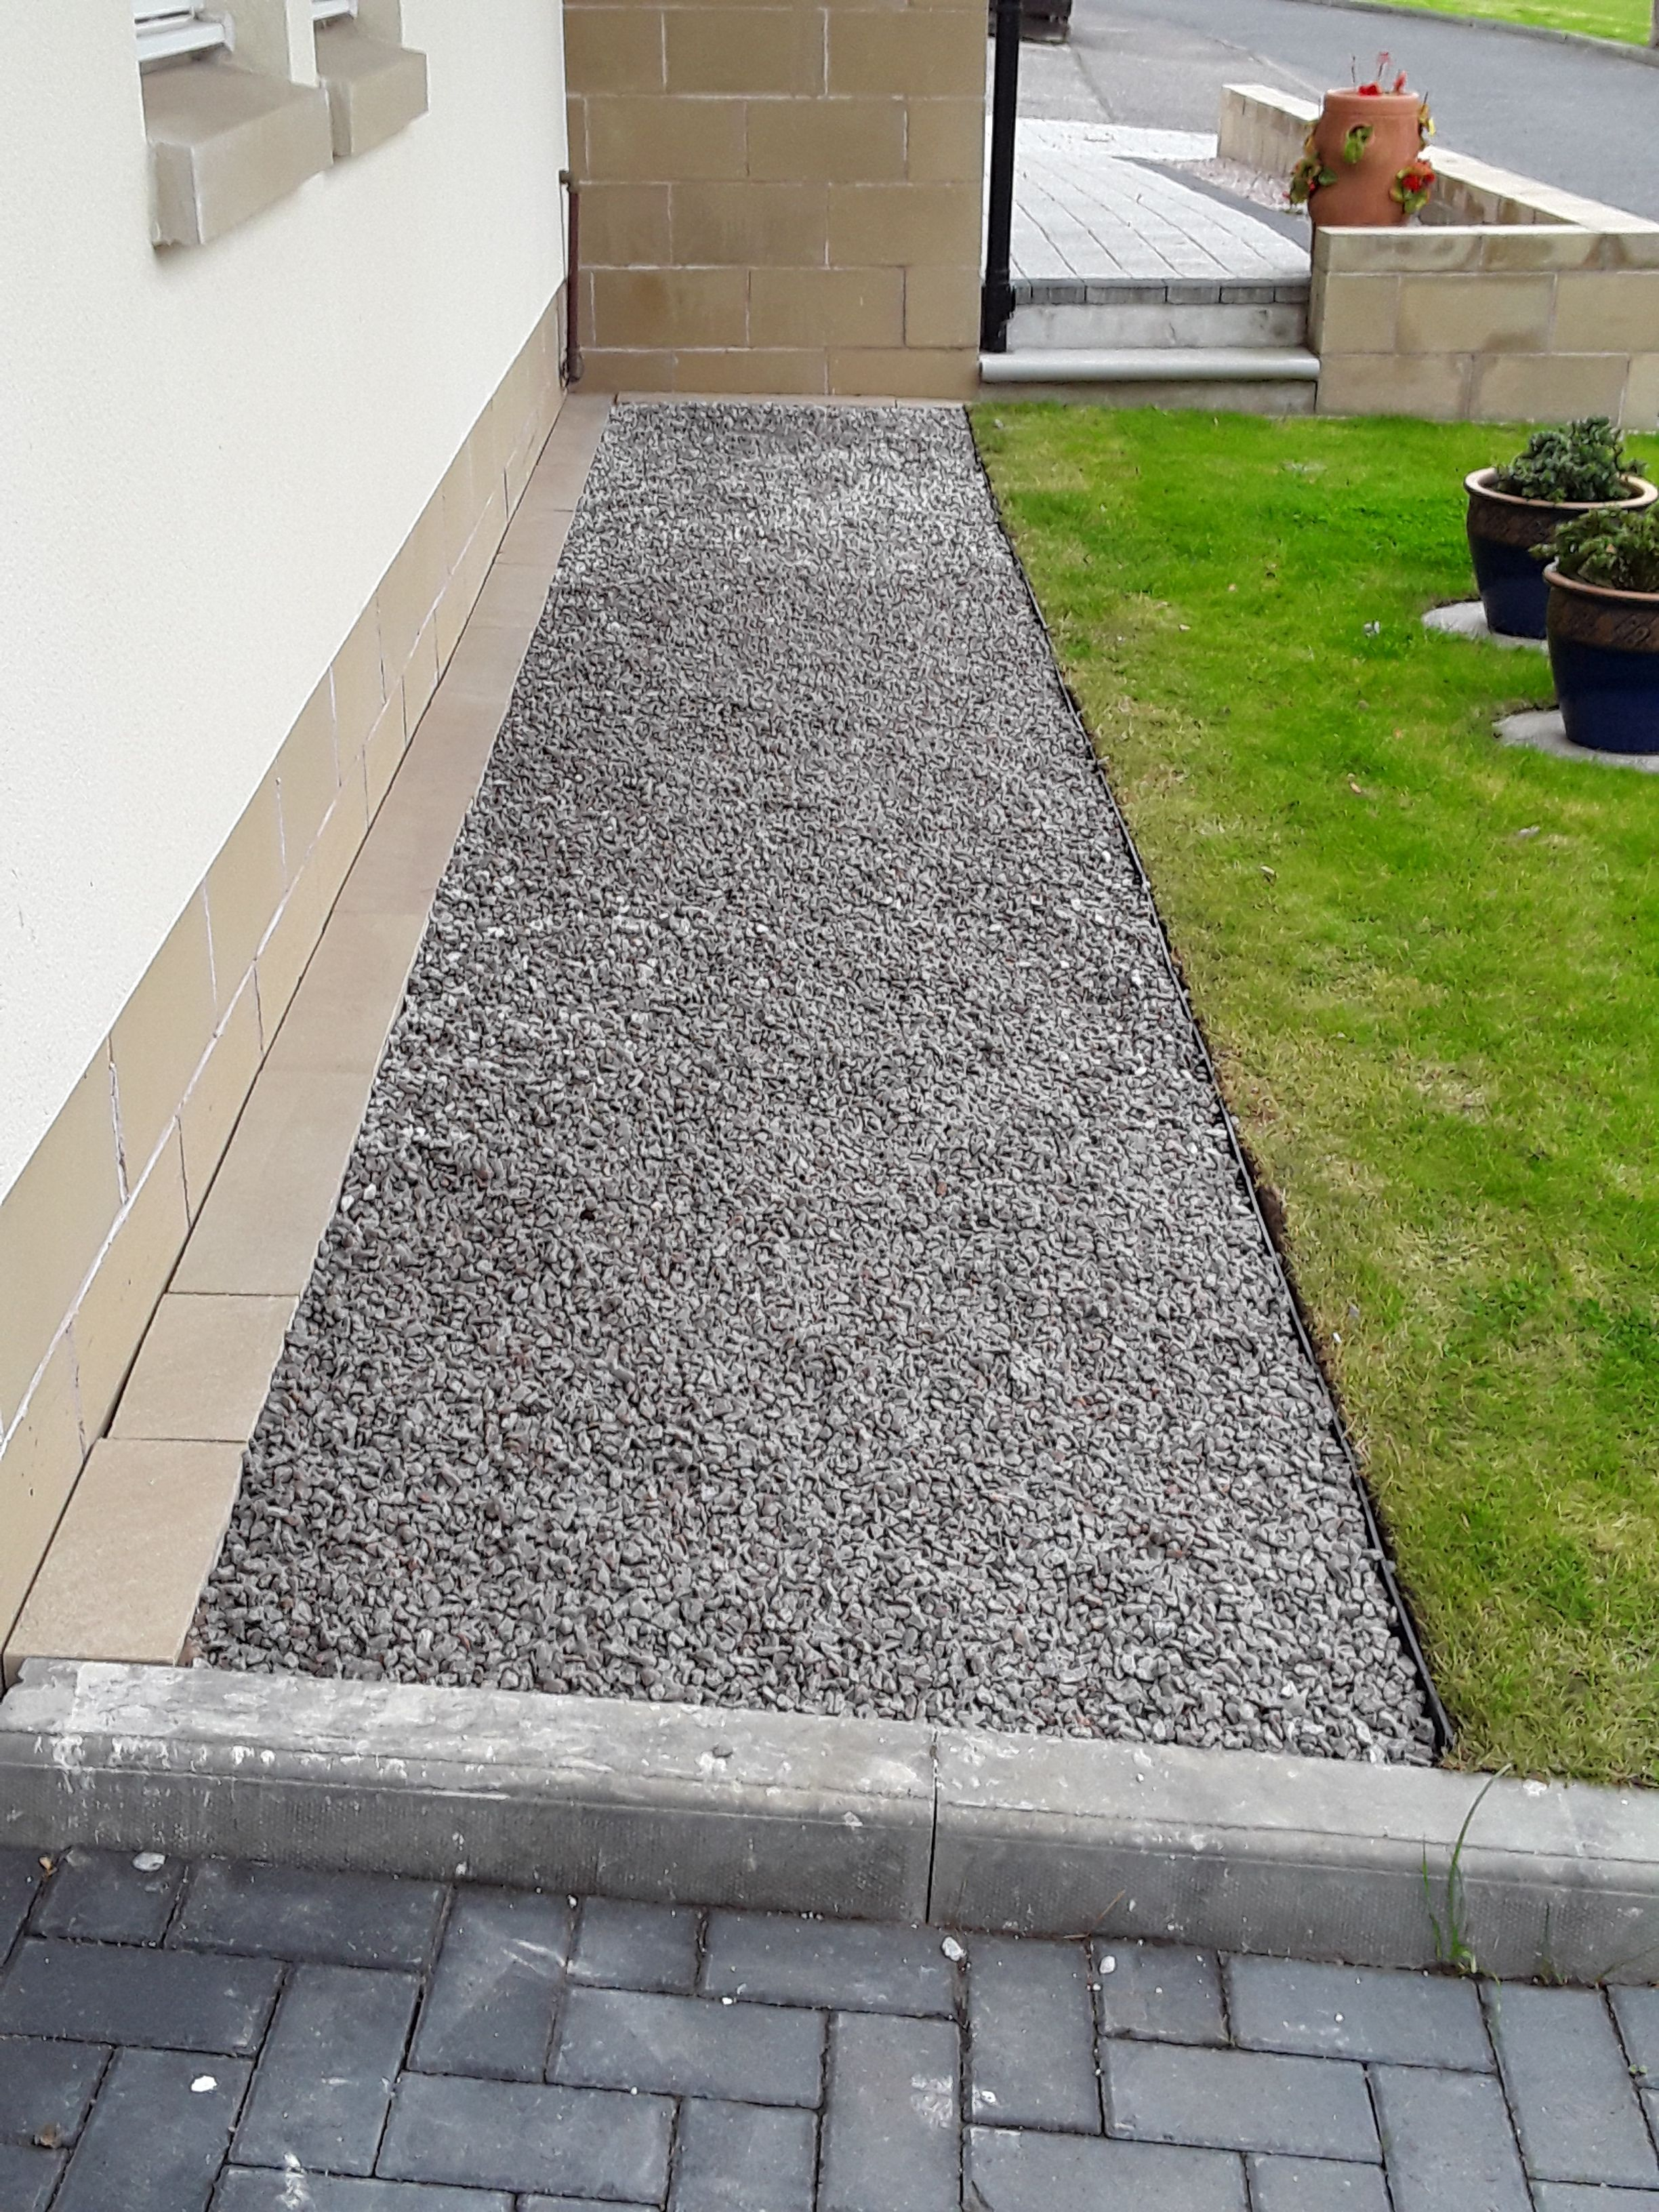 Geoborder edging used in the front garden to create a decorative